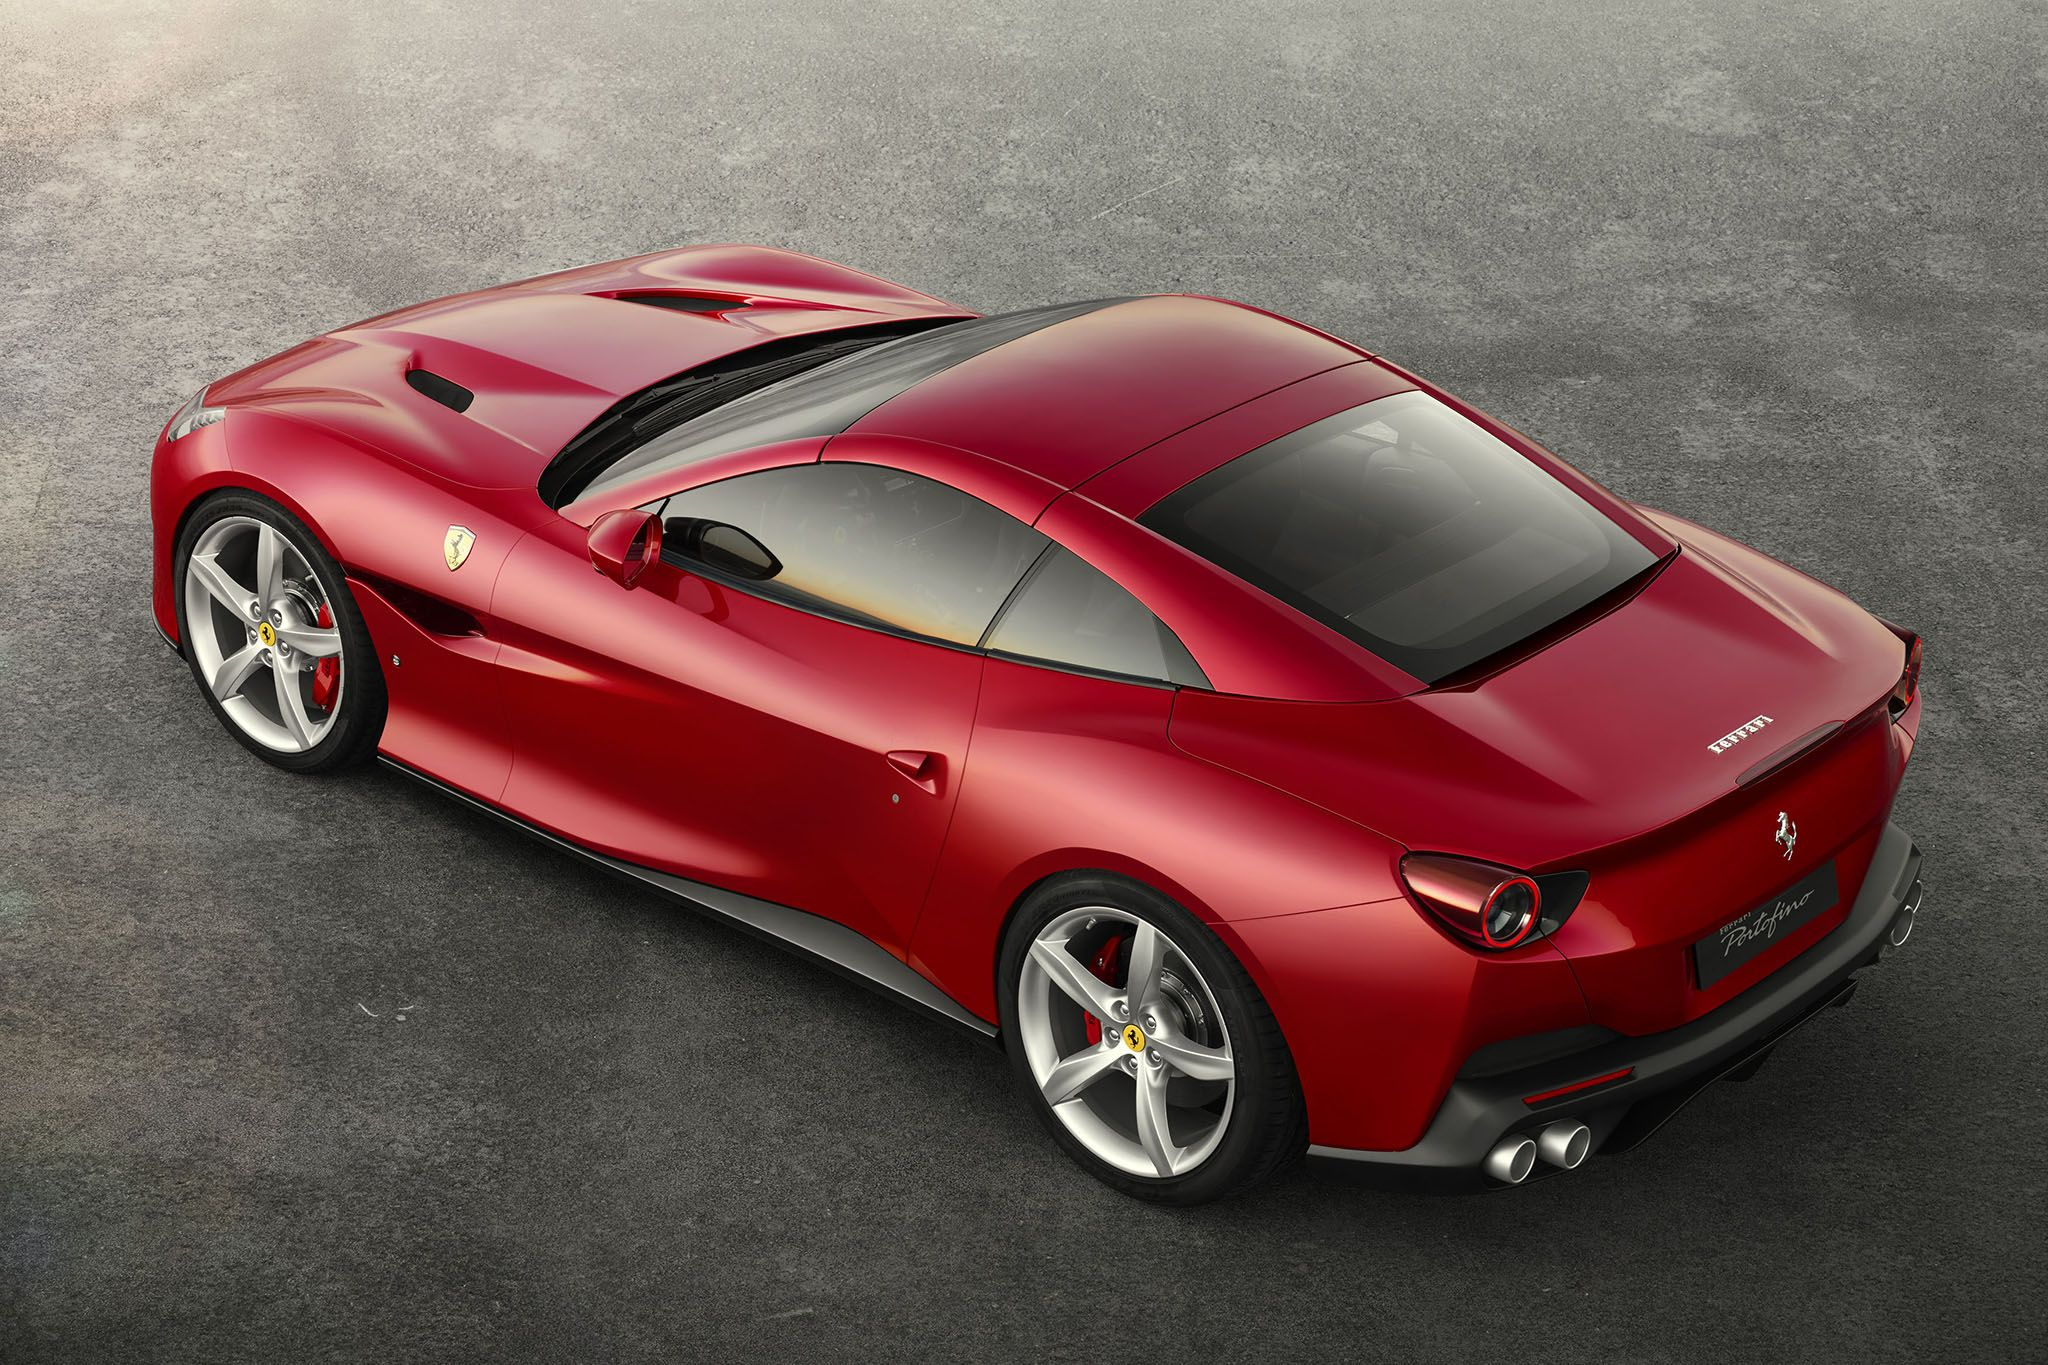 Ferrariu0027s Convertible Portofino Will Make Its World Debut At The Frankfurt  International Motor Show In September